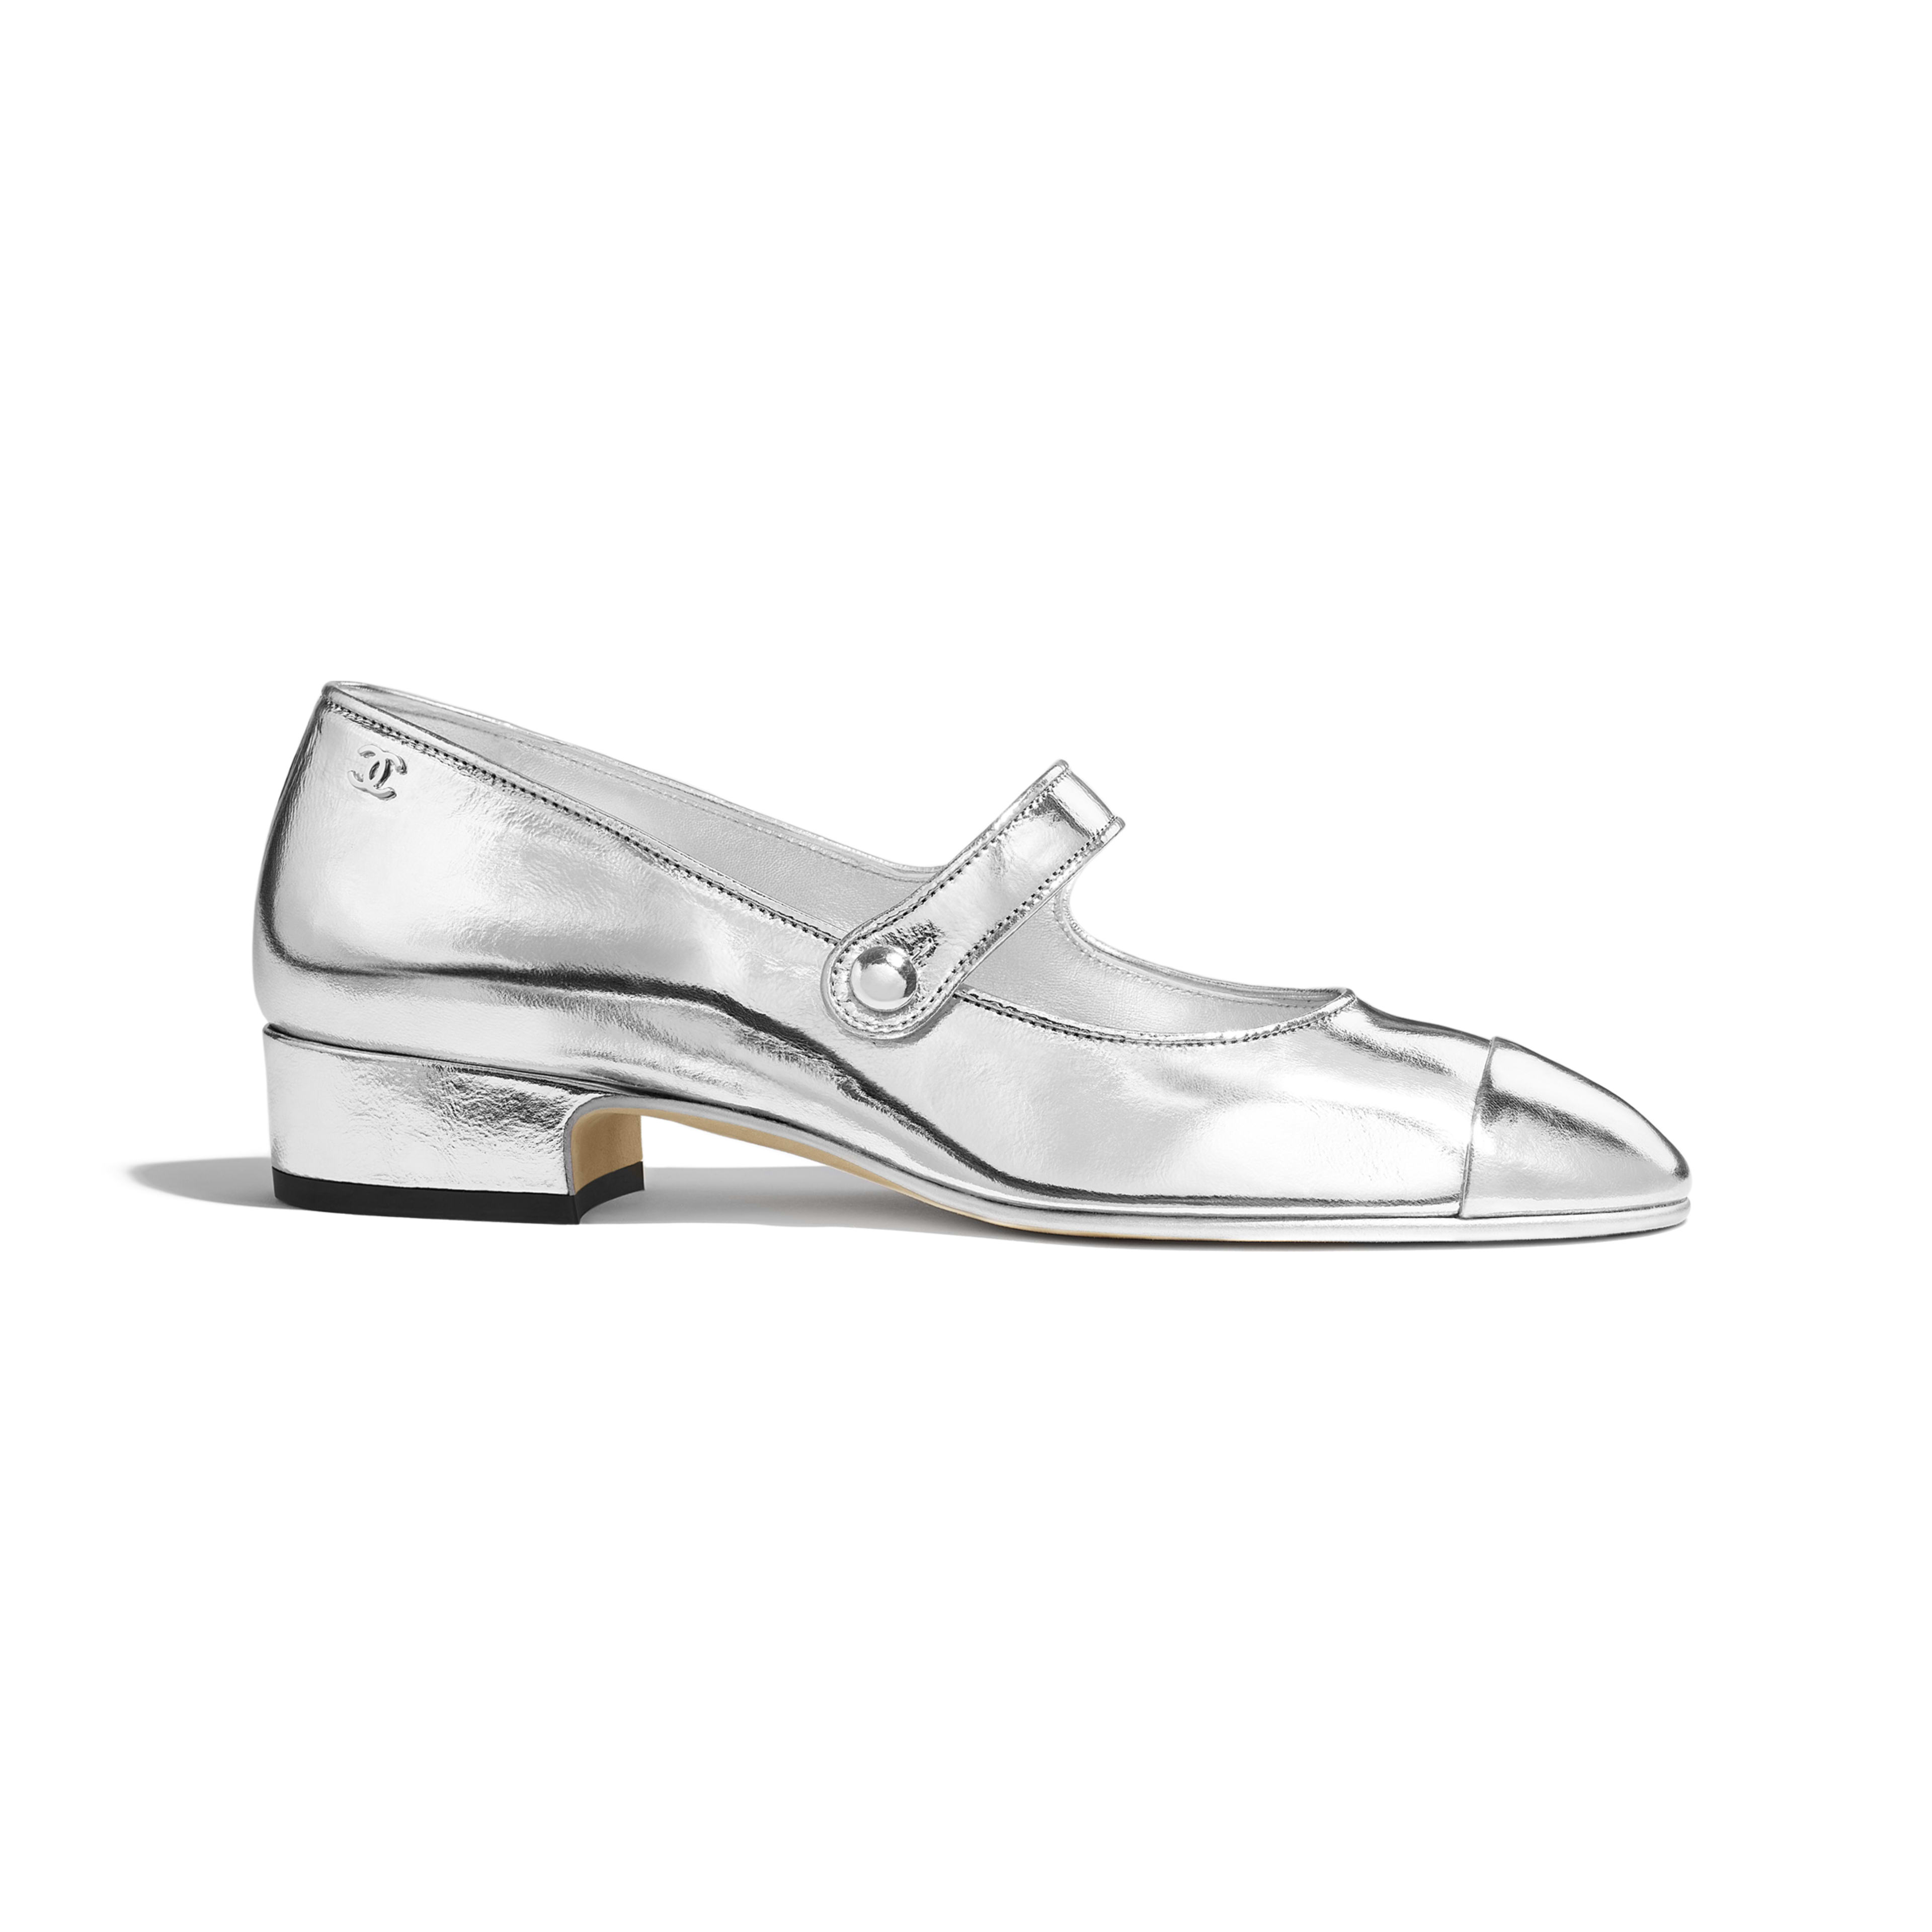 Mary Janes - Silver - Laminated Goatskin - Default view - see full sized version